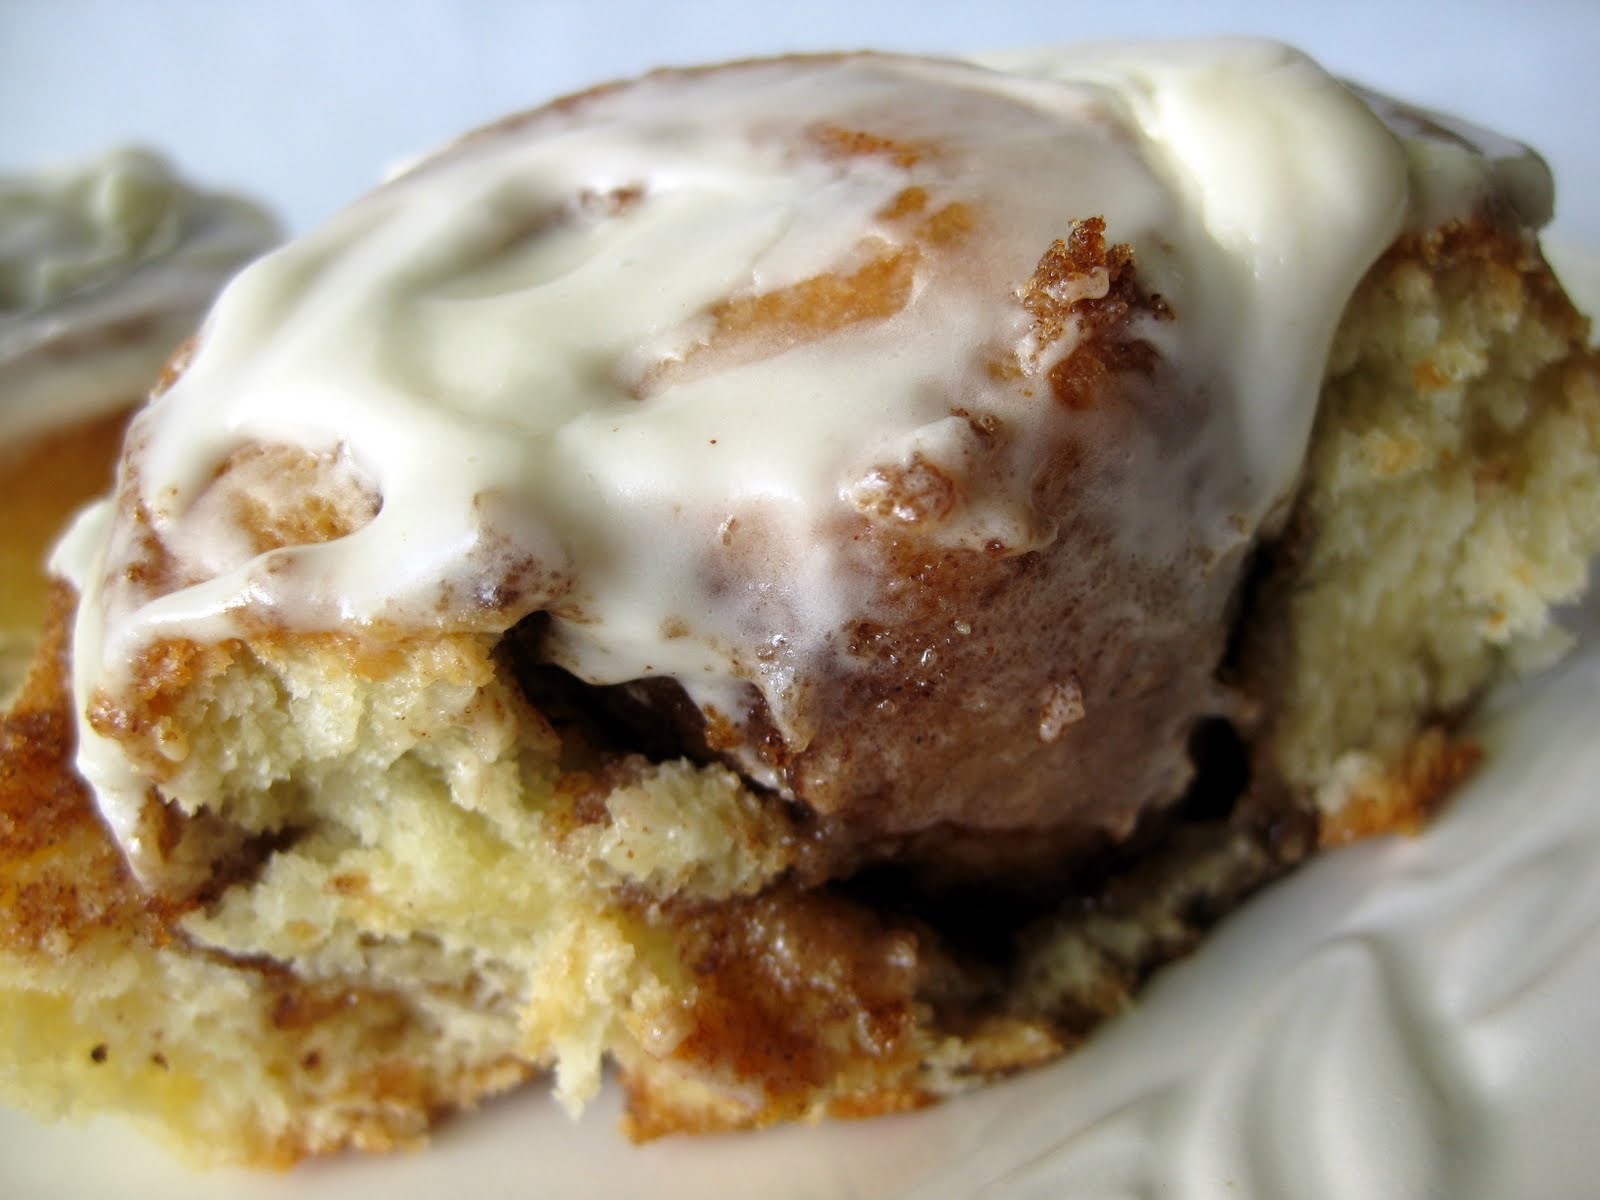 In the Long kitchen: Ultimate Cinnamon Buns